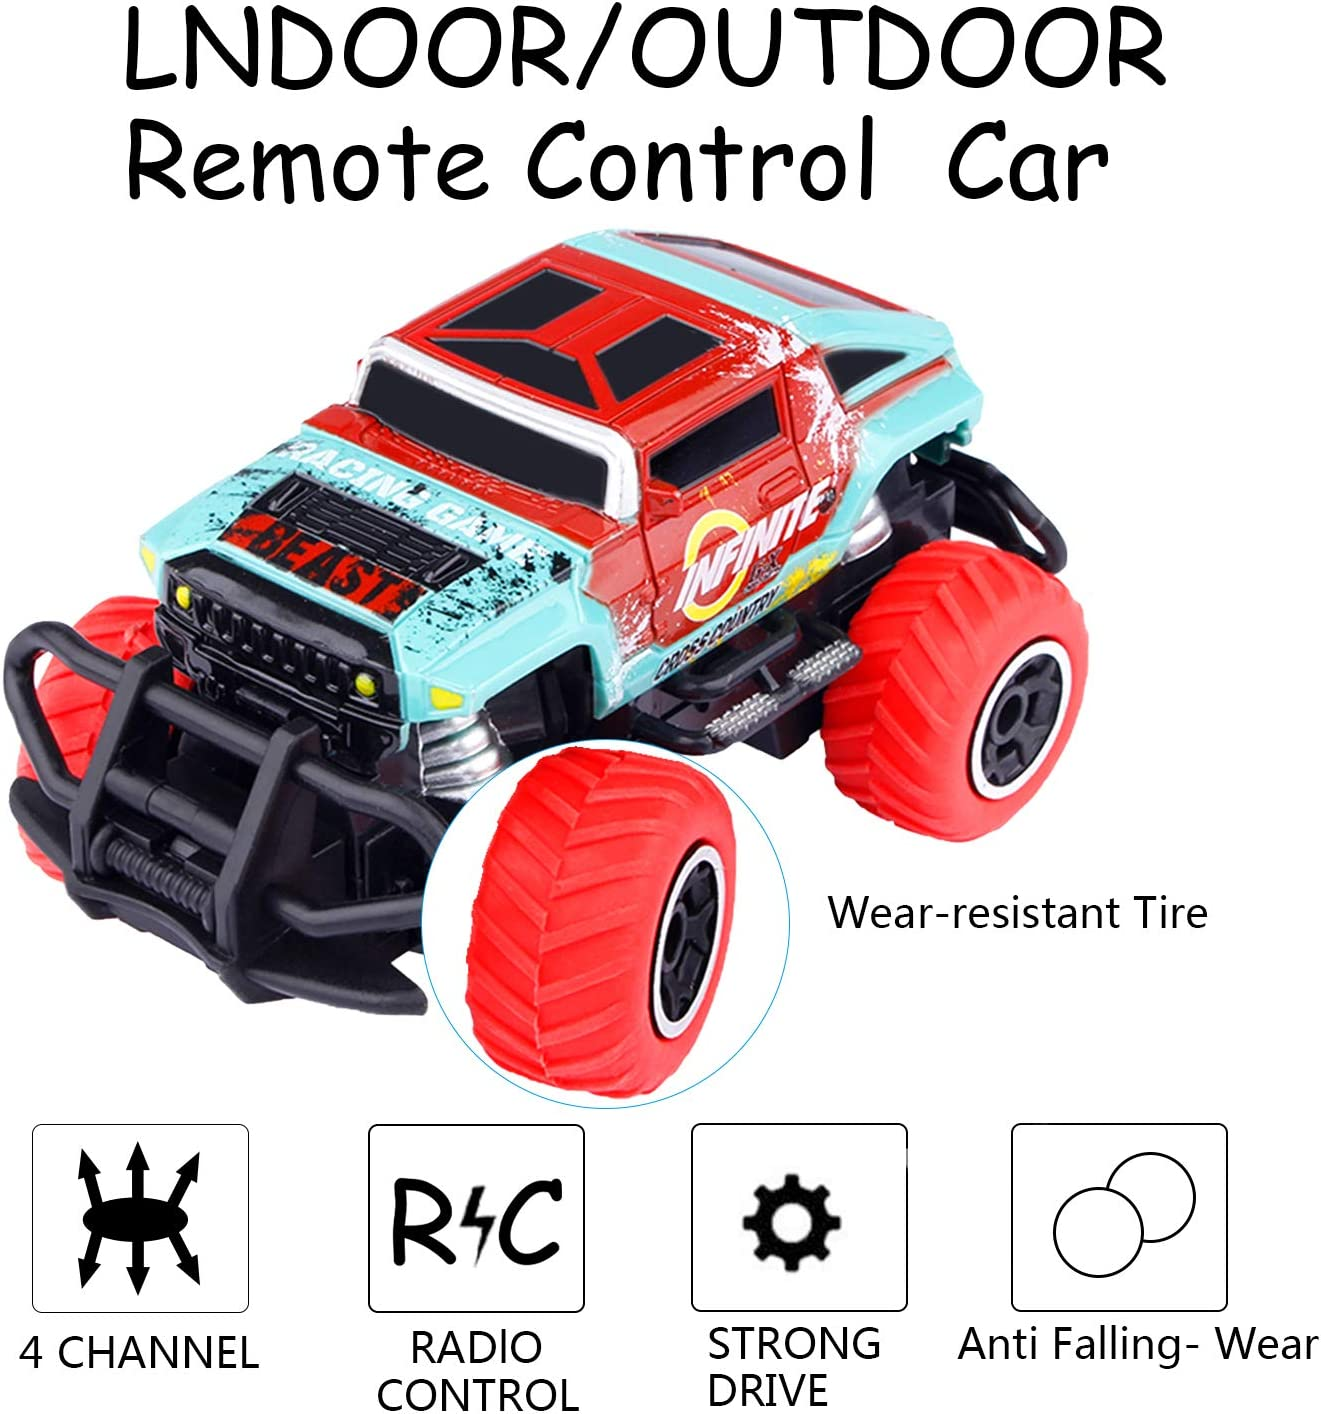 Remote Control Car Toy Auto Redirection 5 Models Pickup Jeep Cruiser Benz Hummer Off-Road RC Car Best Birthday Gift for 3-12 Years Old Kids Best Present for children to play with their friends